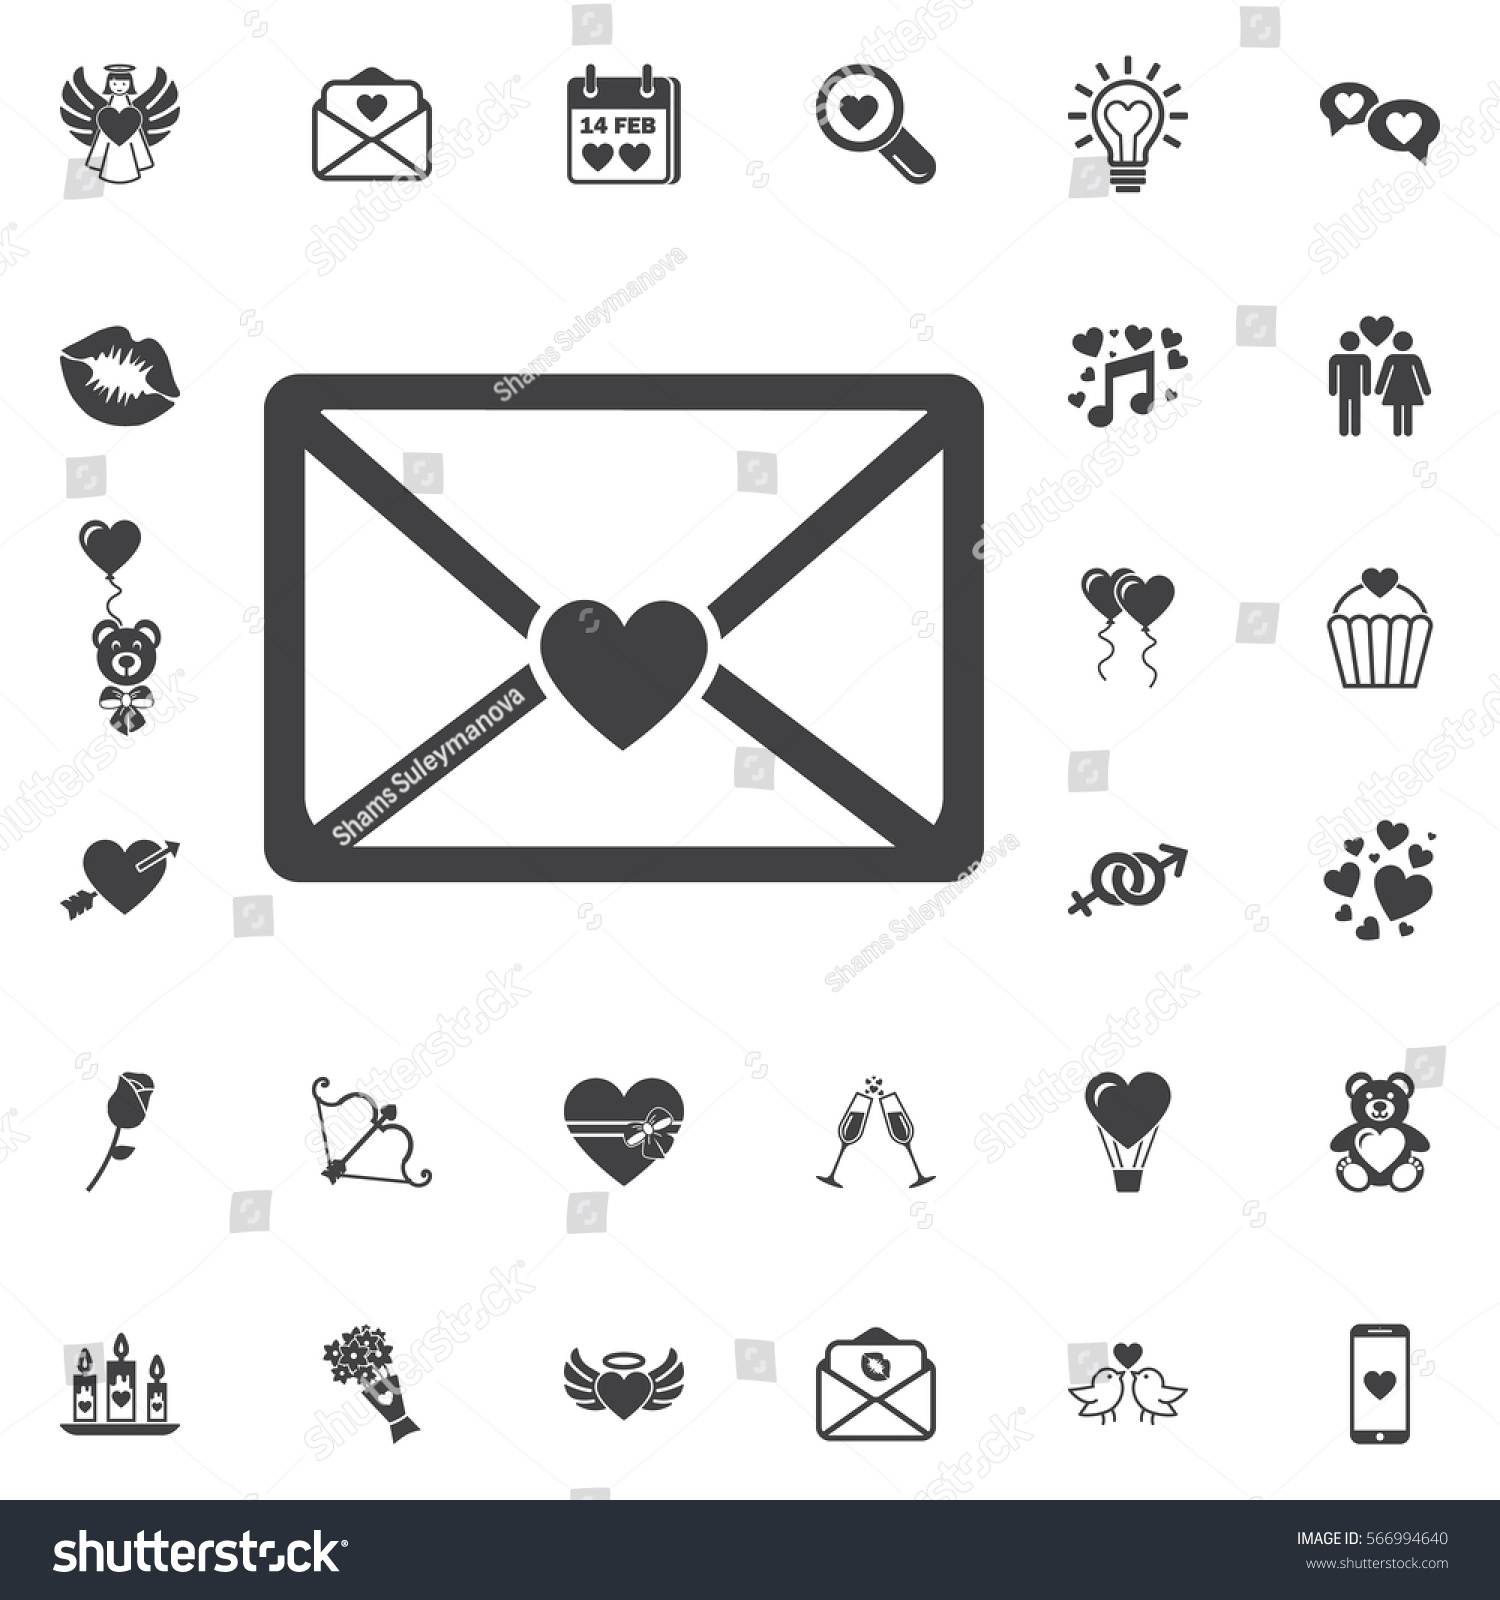 icon email heard love letter sing stock vector 566994640 shutterstock